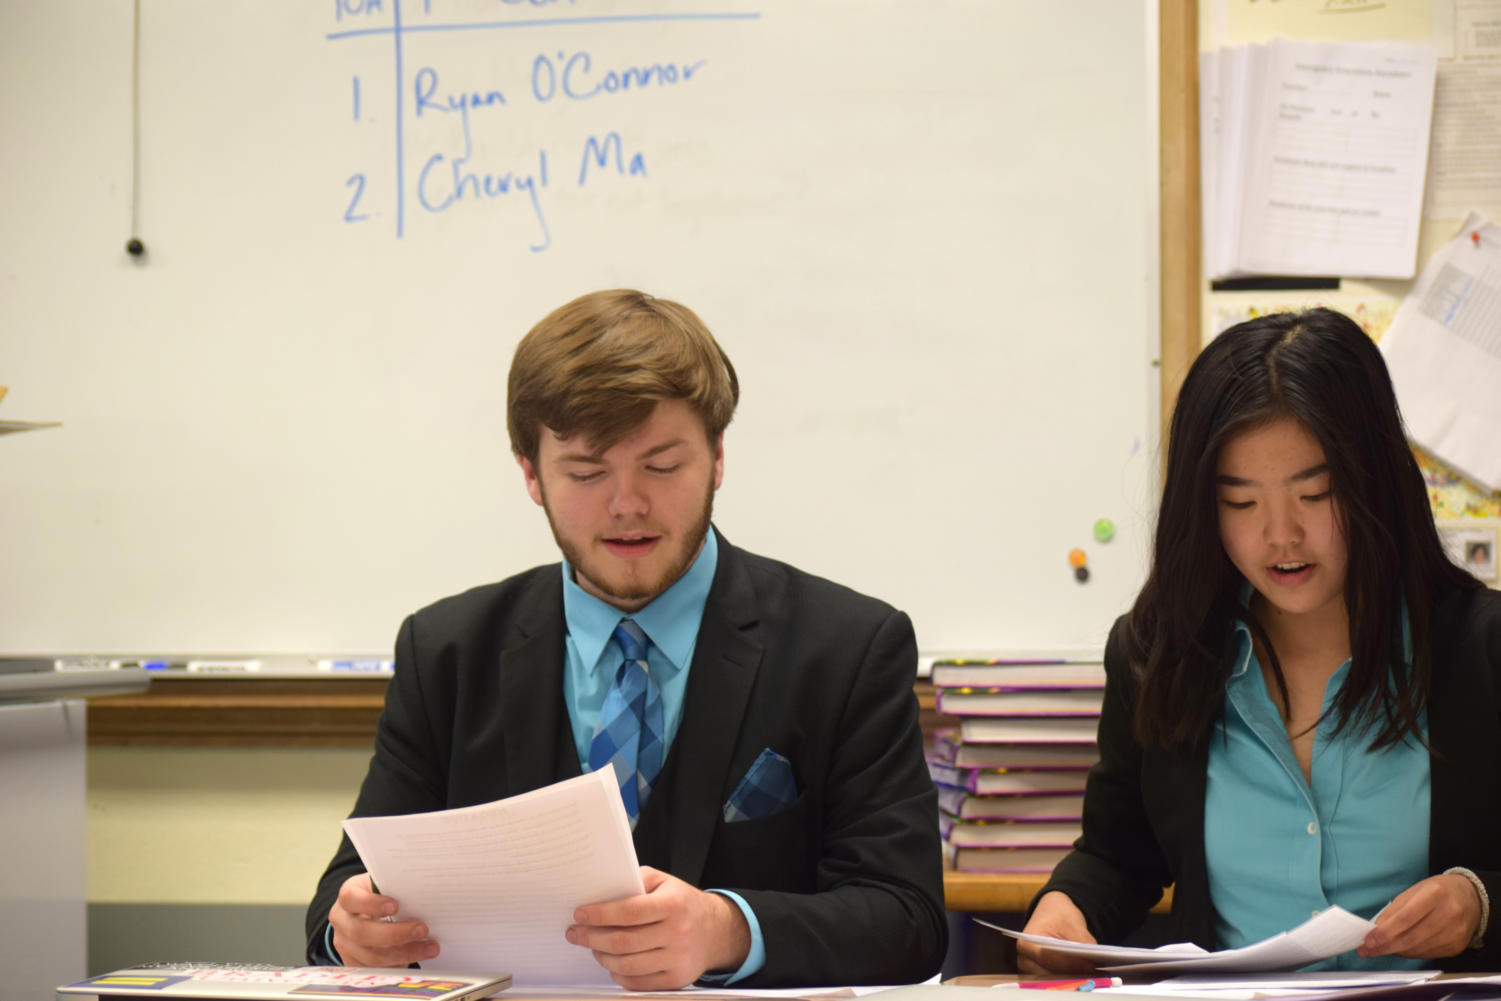 """Preparing for a round with his debate partner Cheryl Ma, senior Ryan O'Connor studies information he has researched. Being partners for only one year, they placed first in districts and went to Nationals in the 2016-2017 school year. """"Cheryl is the love of my life. She has made it bearable. Working with her has helped me re-find my passion,"""" O'Connor said."""